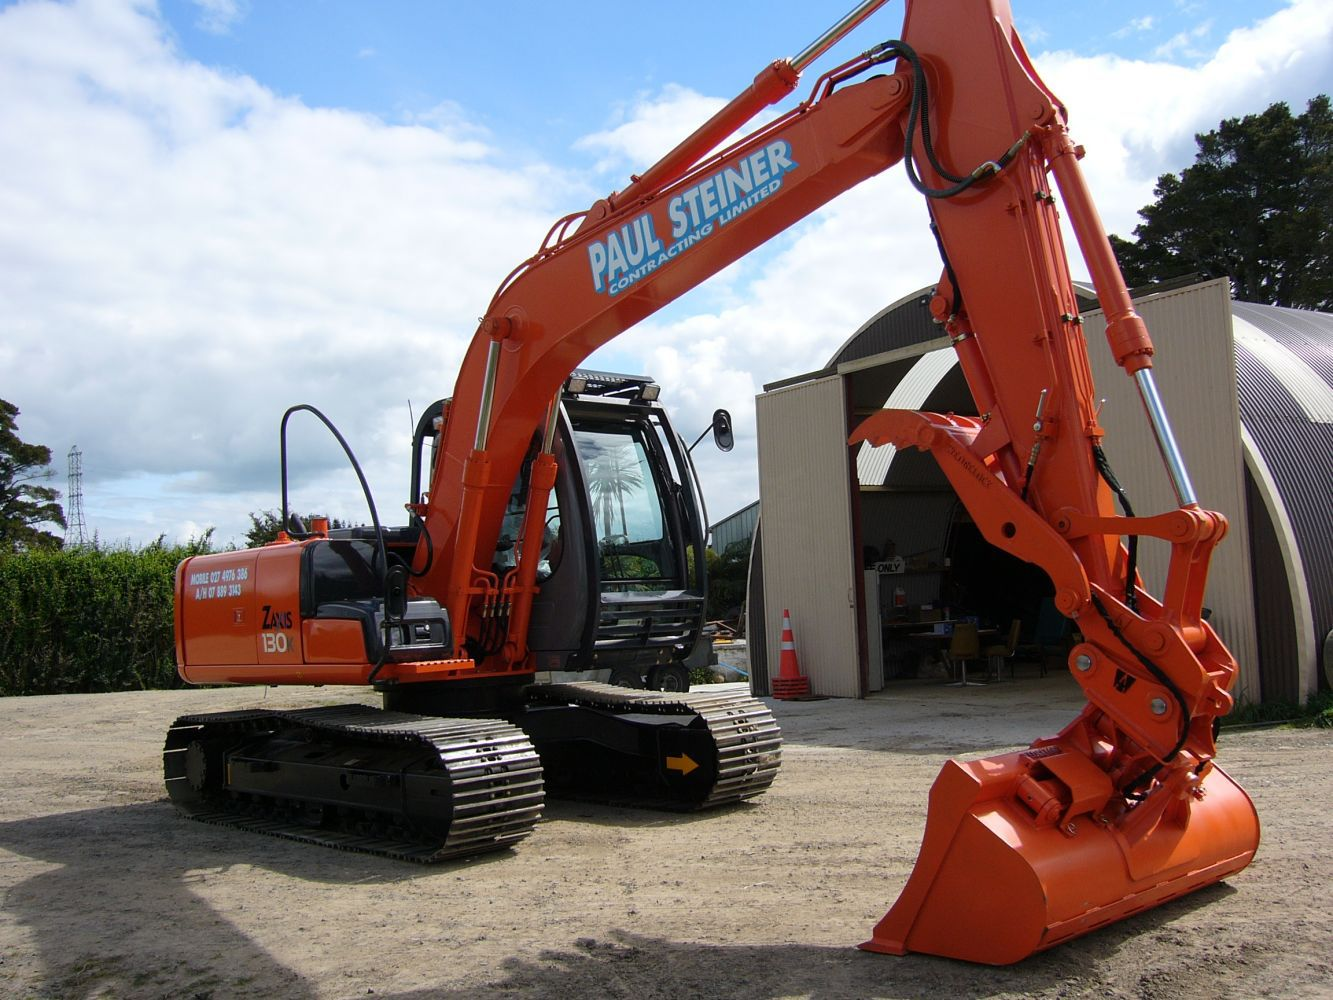 Orange digger machine